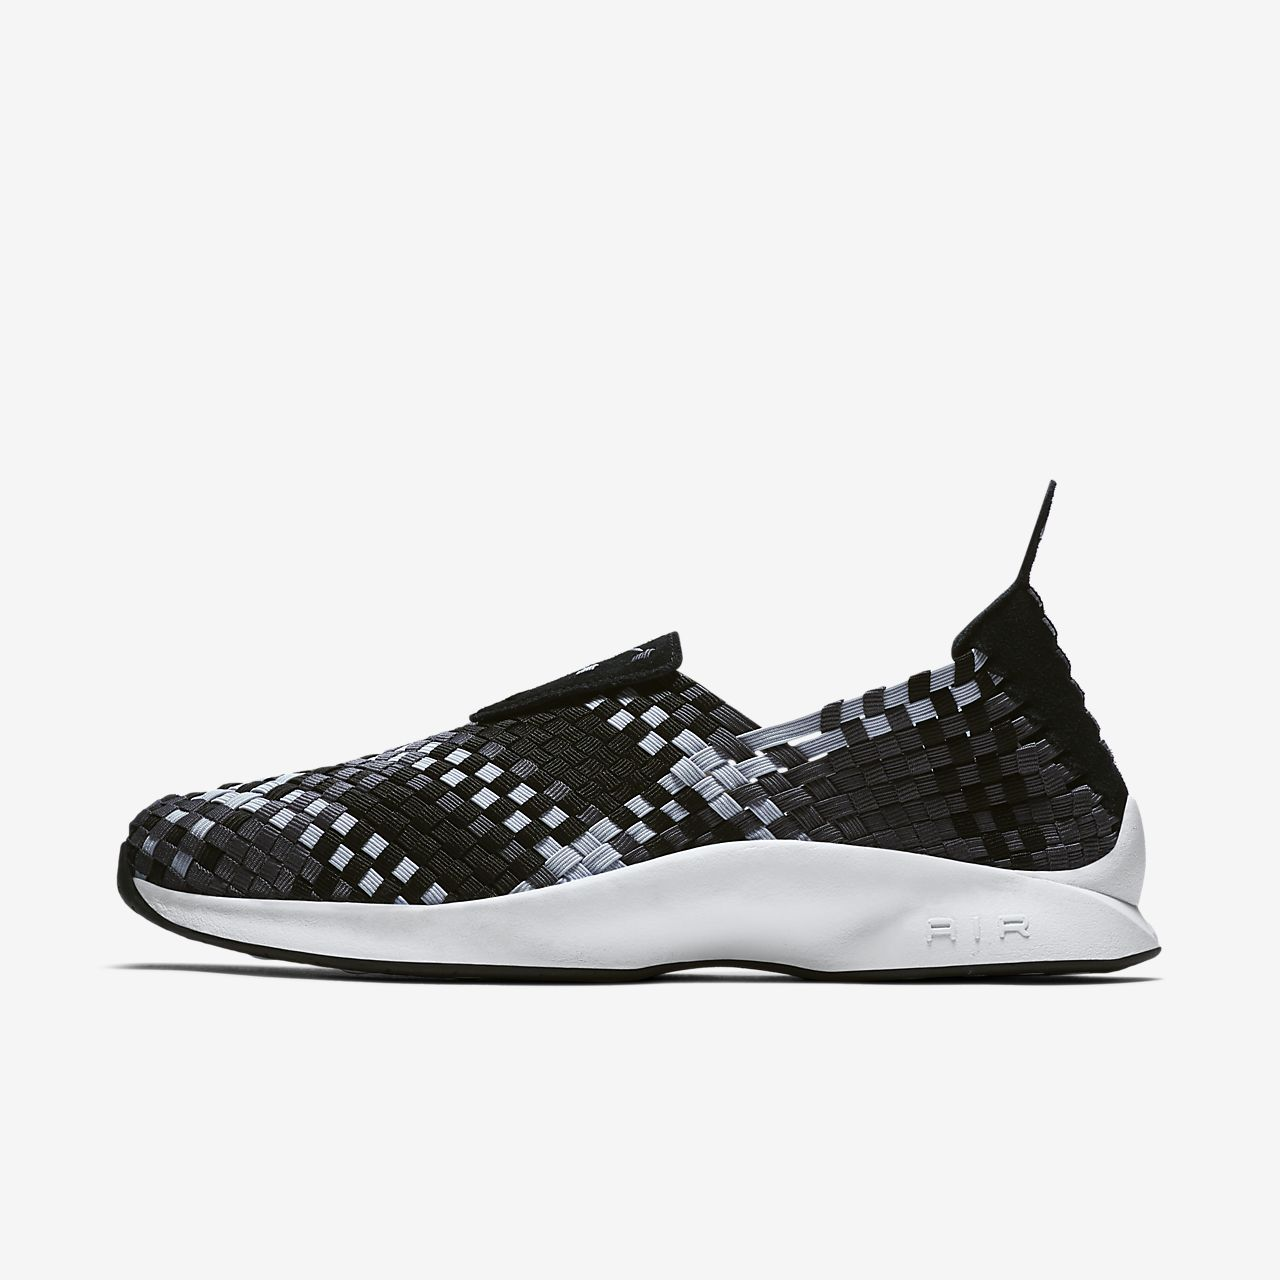 low priced 2770a ae568 ... Nike Air Woven Men s Shoe